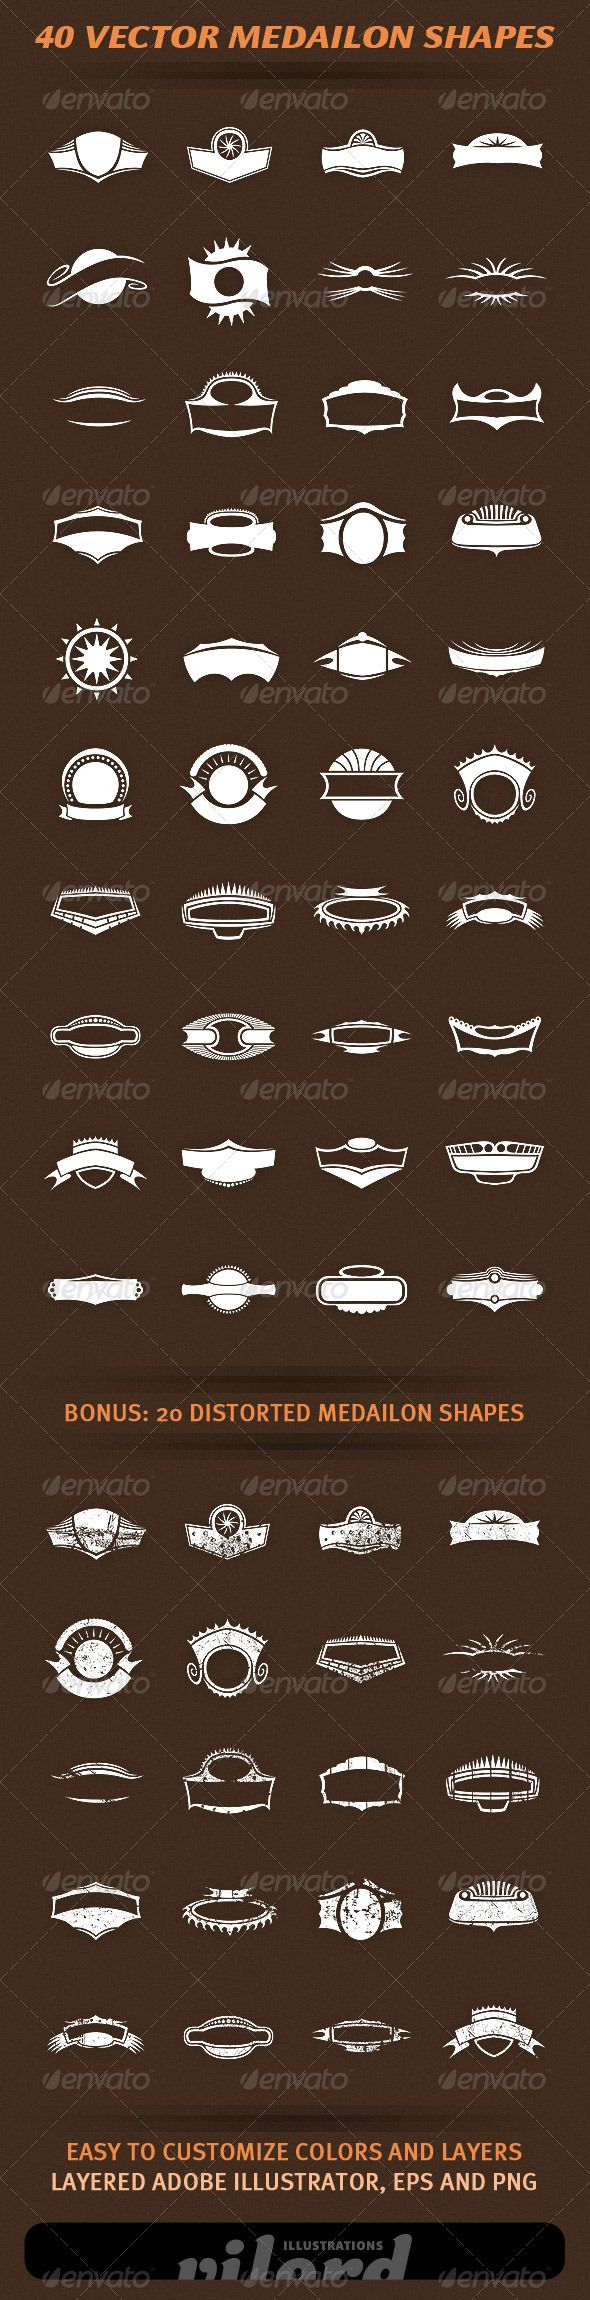 40 Vector Medailon Shapes